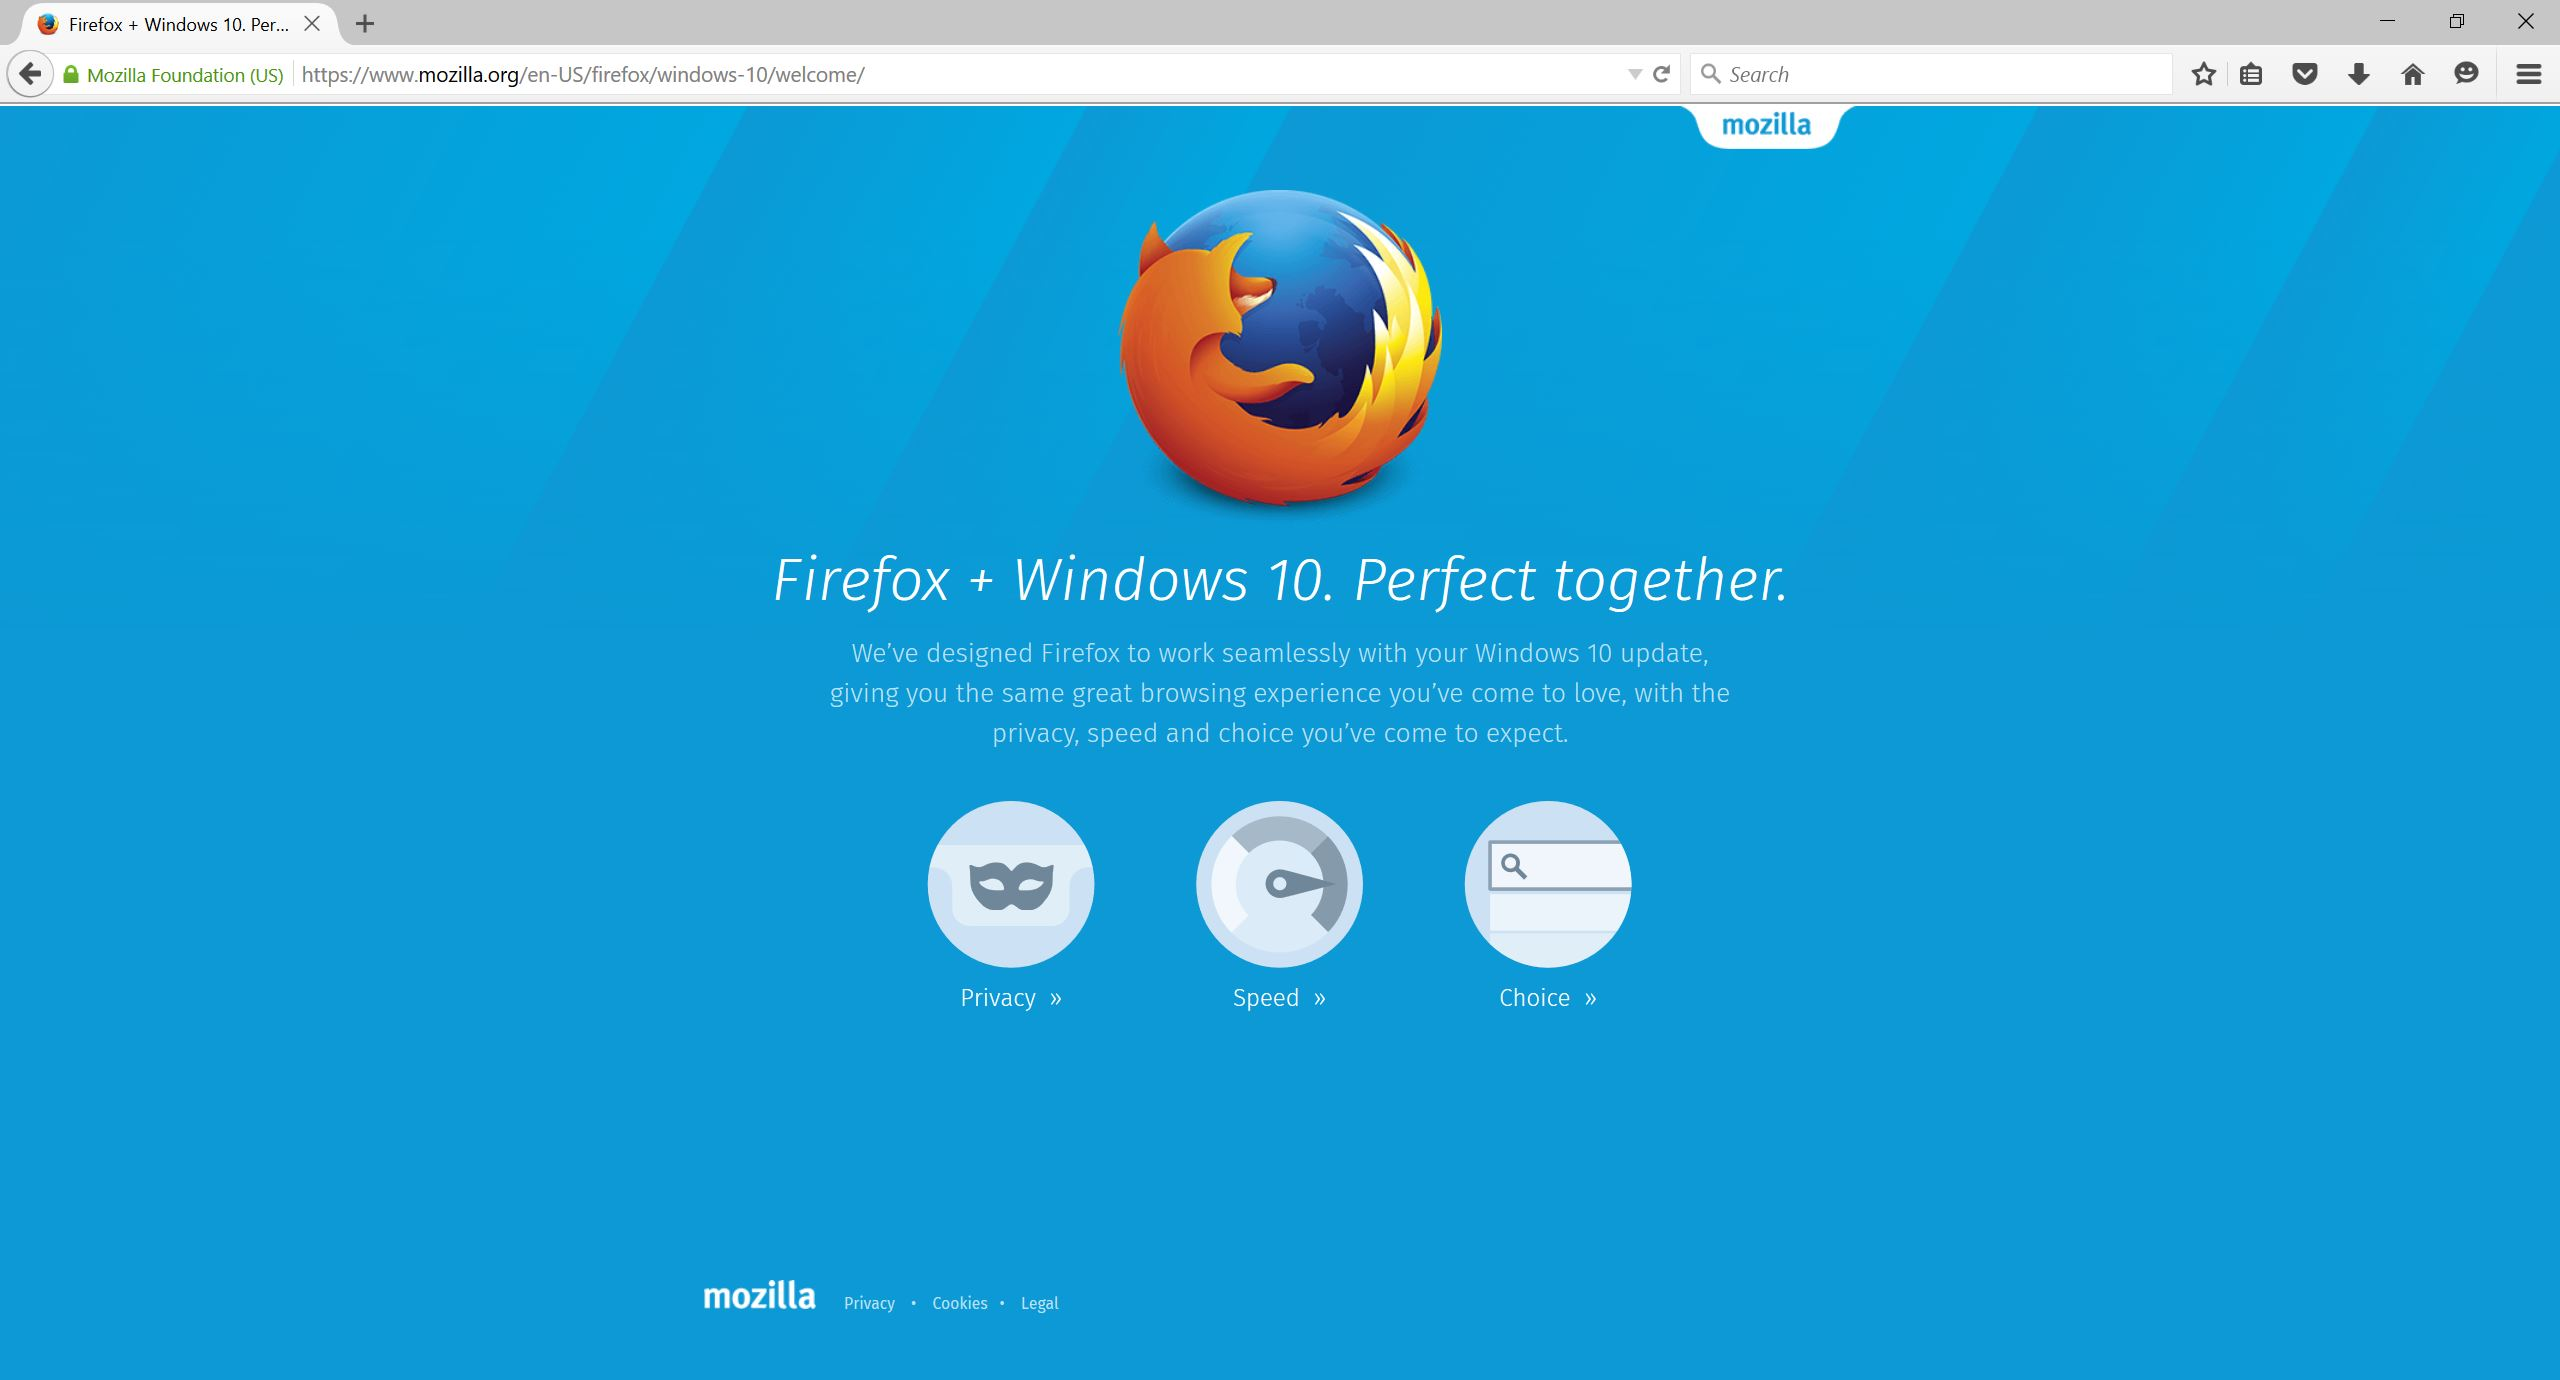 Firefox in Windows 10